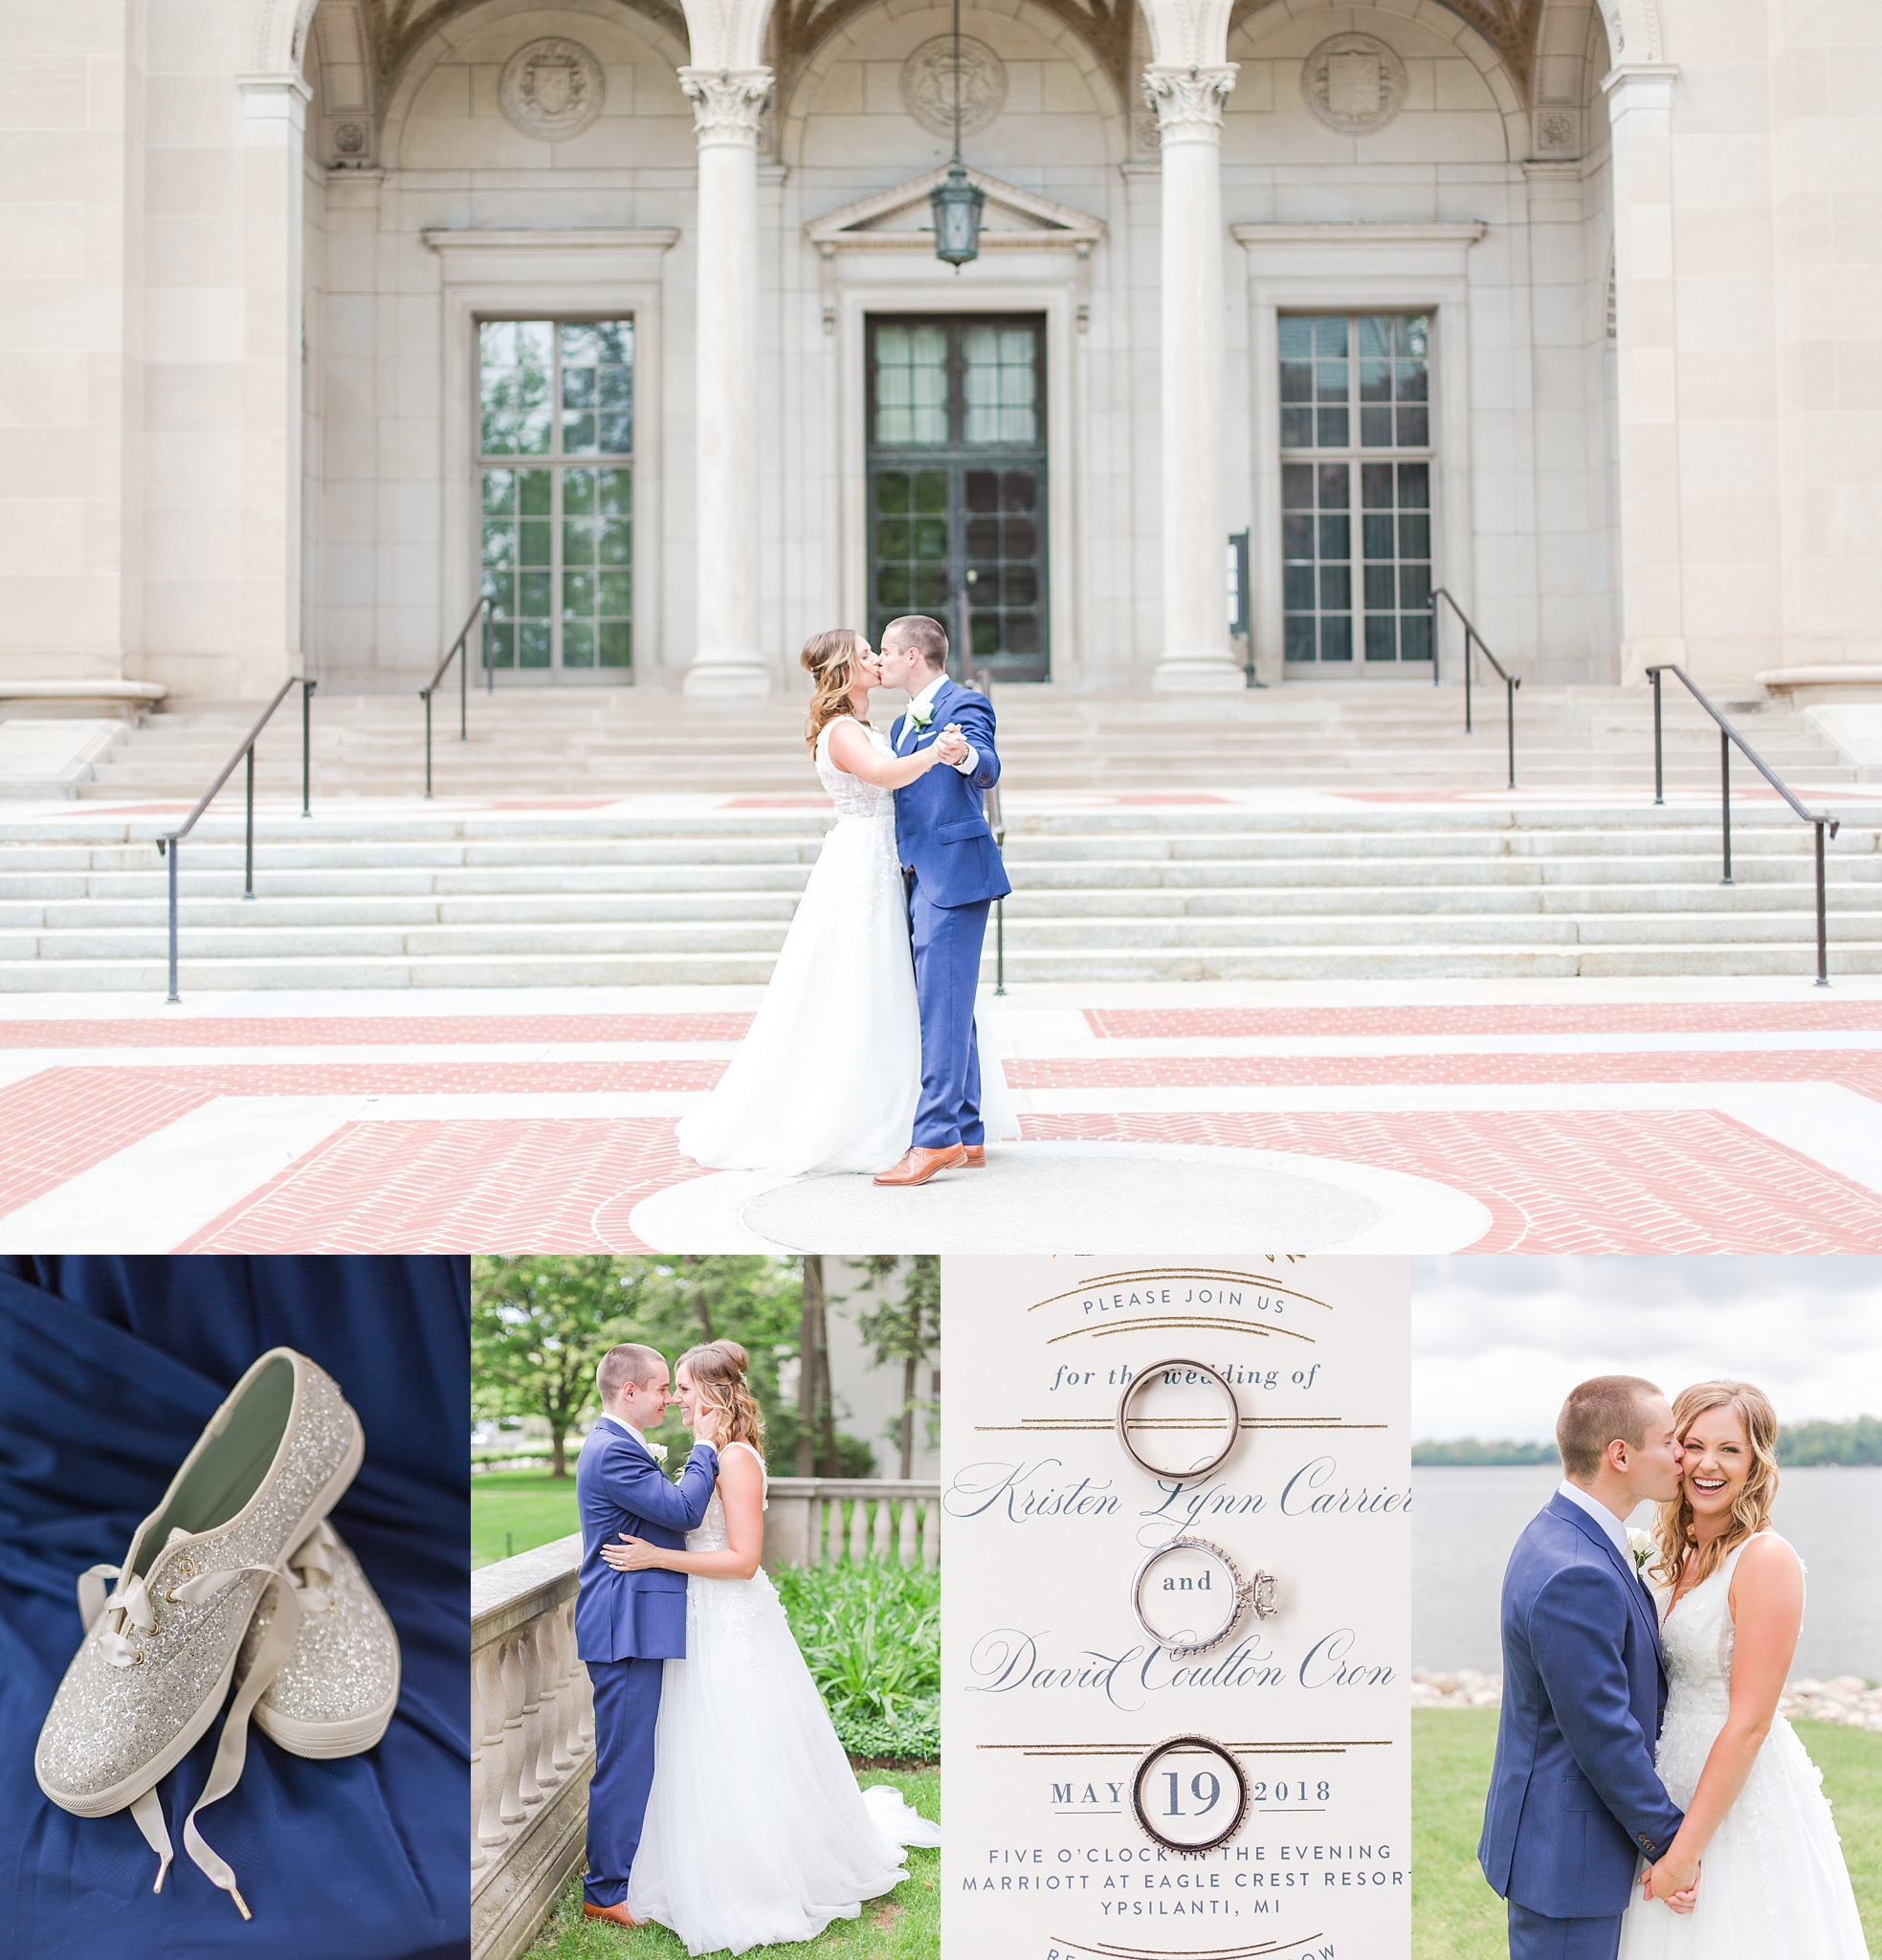 joyful-candid-laid-back-wedding-photos-in-ann-arbor-michigan-and-at-the-eagle-crest-golf-resort-by-courtney-carolyn-photography_0125.jpg